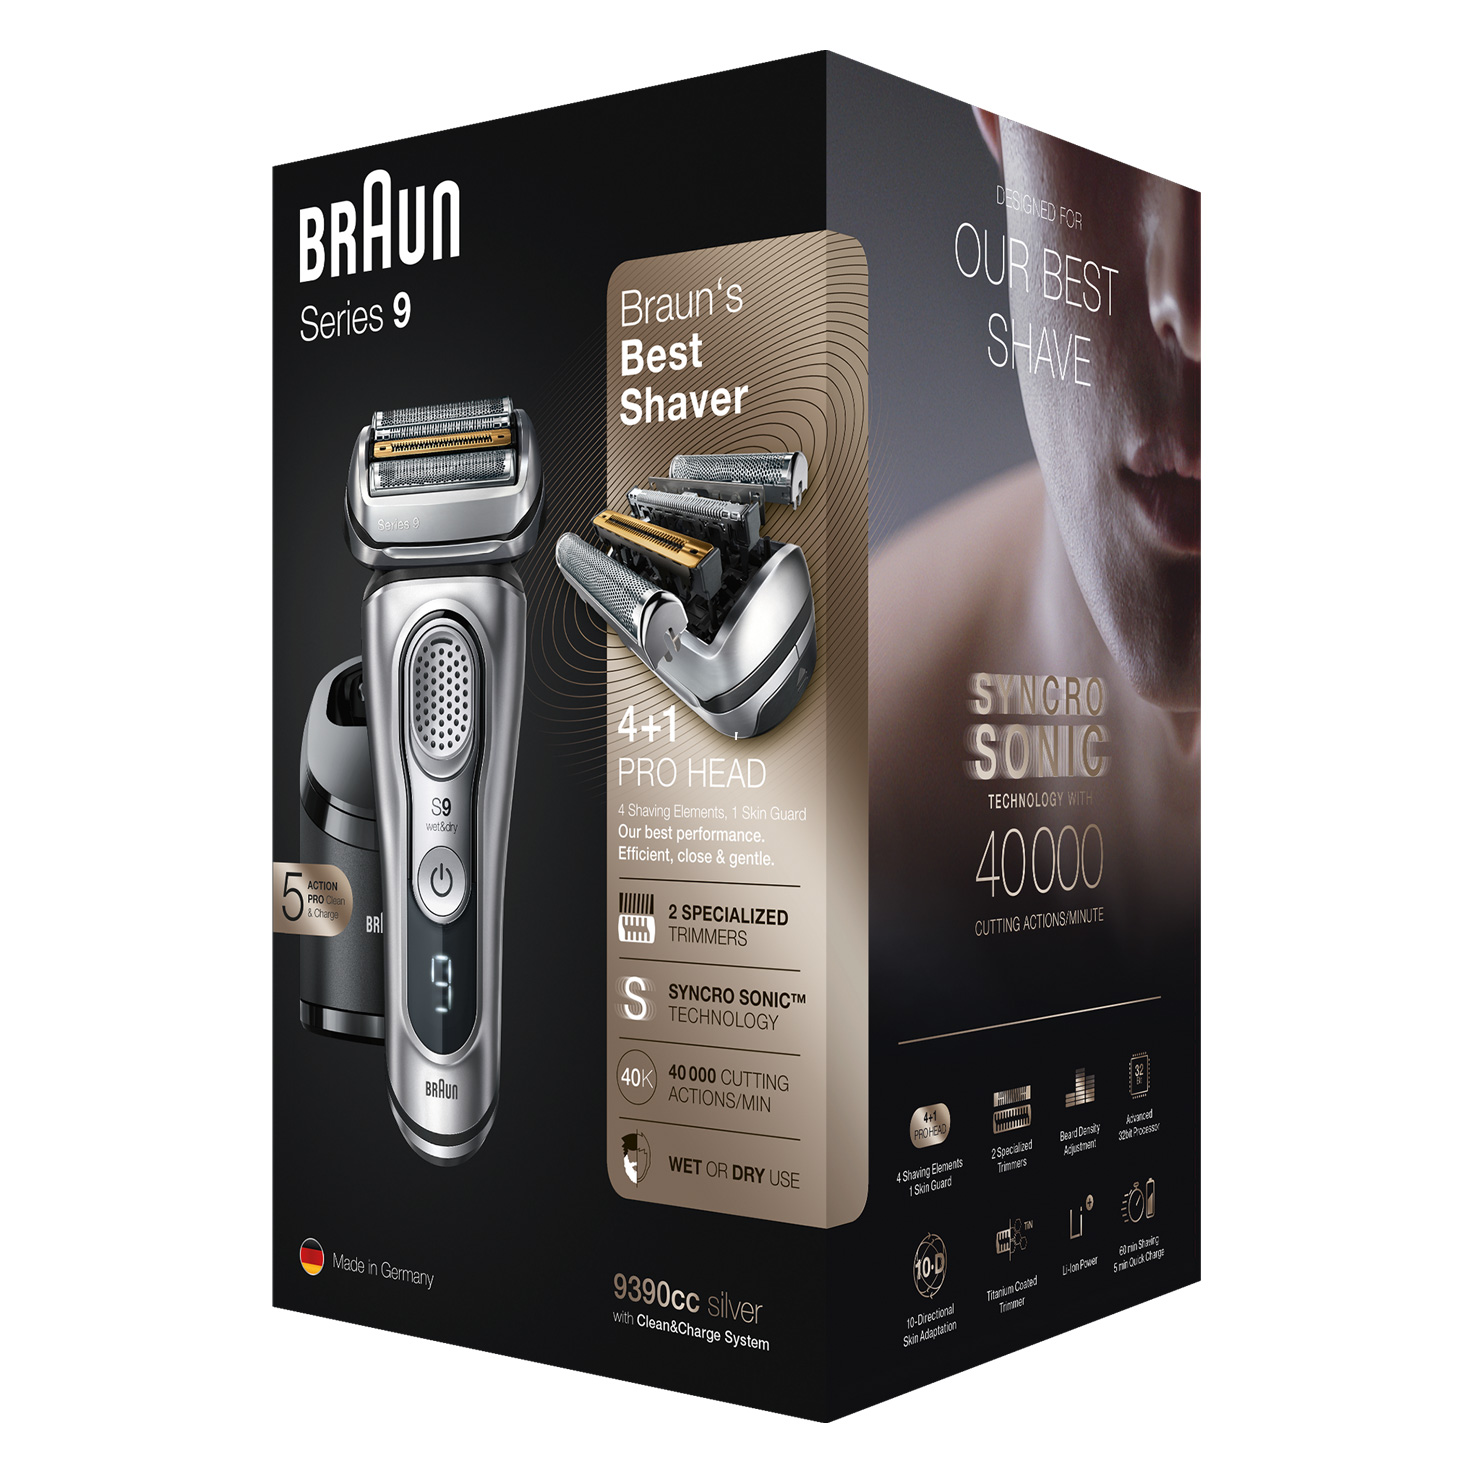 Series 9 9390cc shaver - Packaging